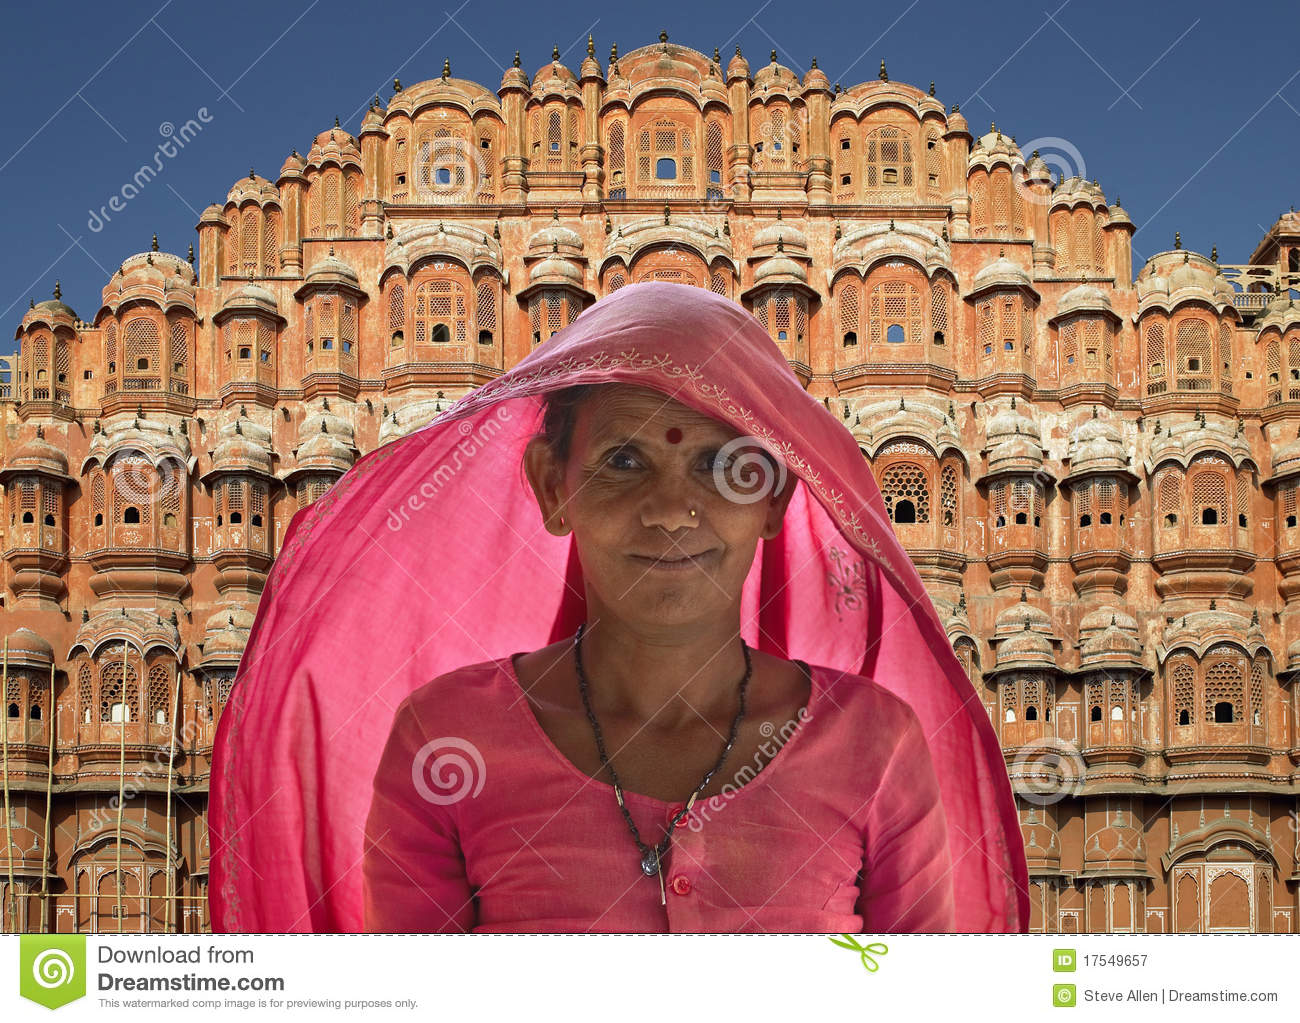 Indian lady - Palace of the Winds - Jaipur - India